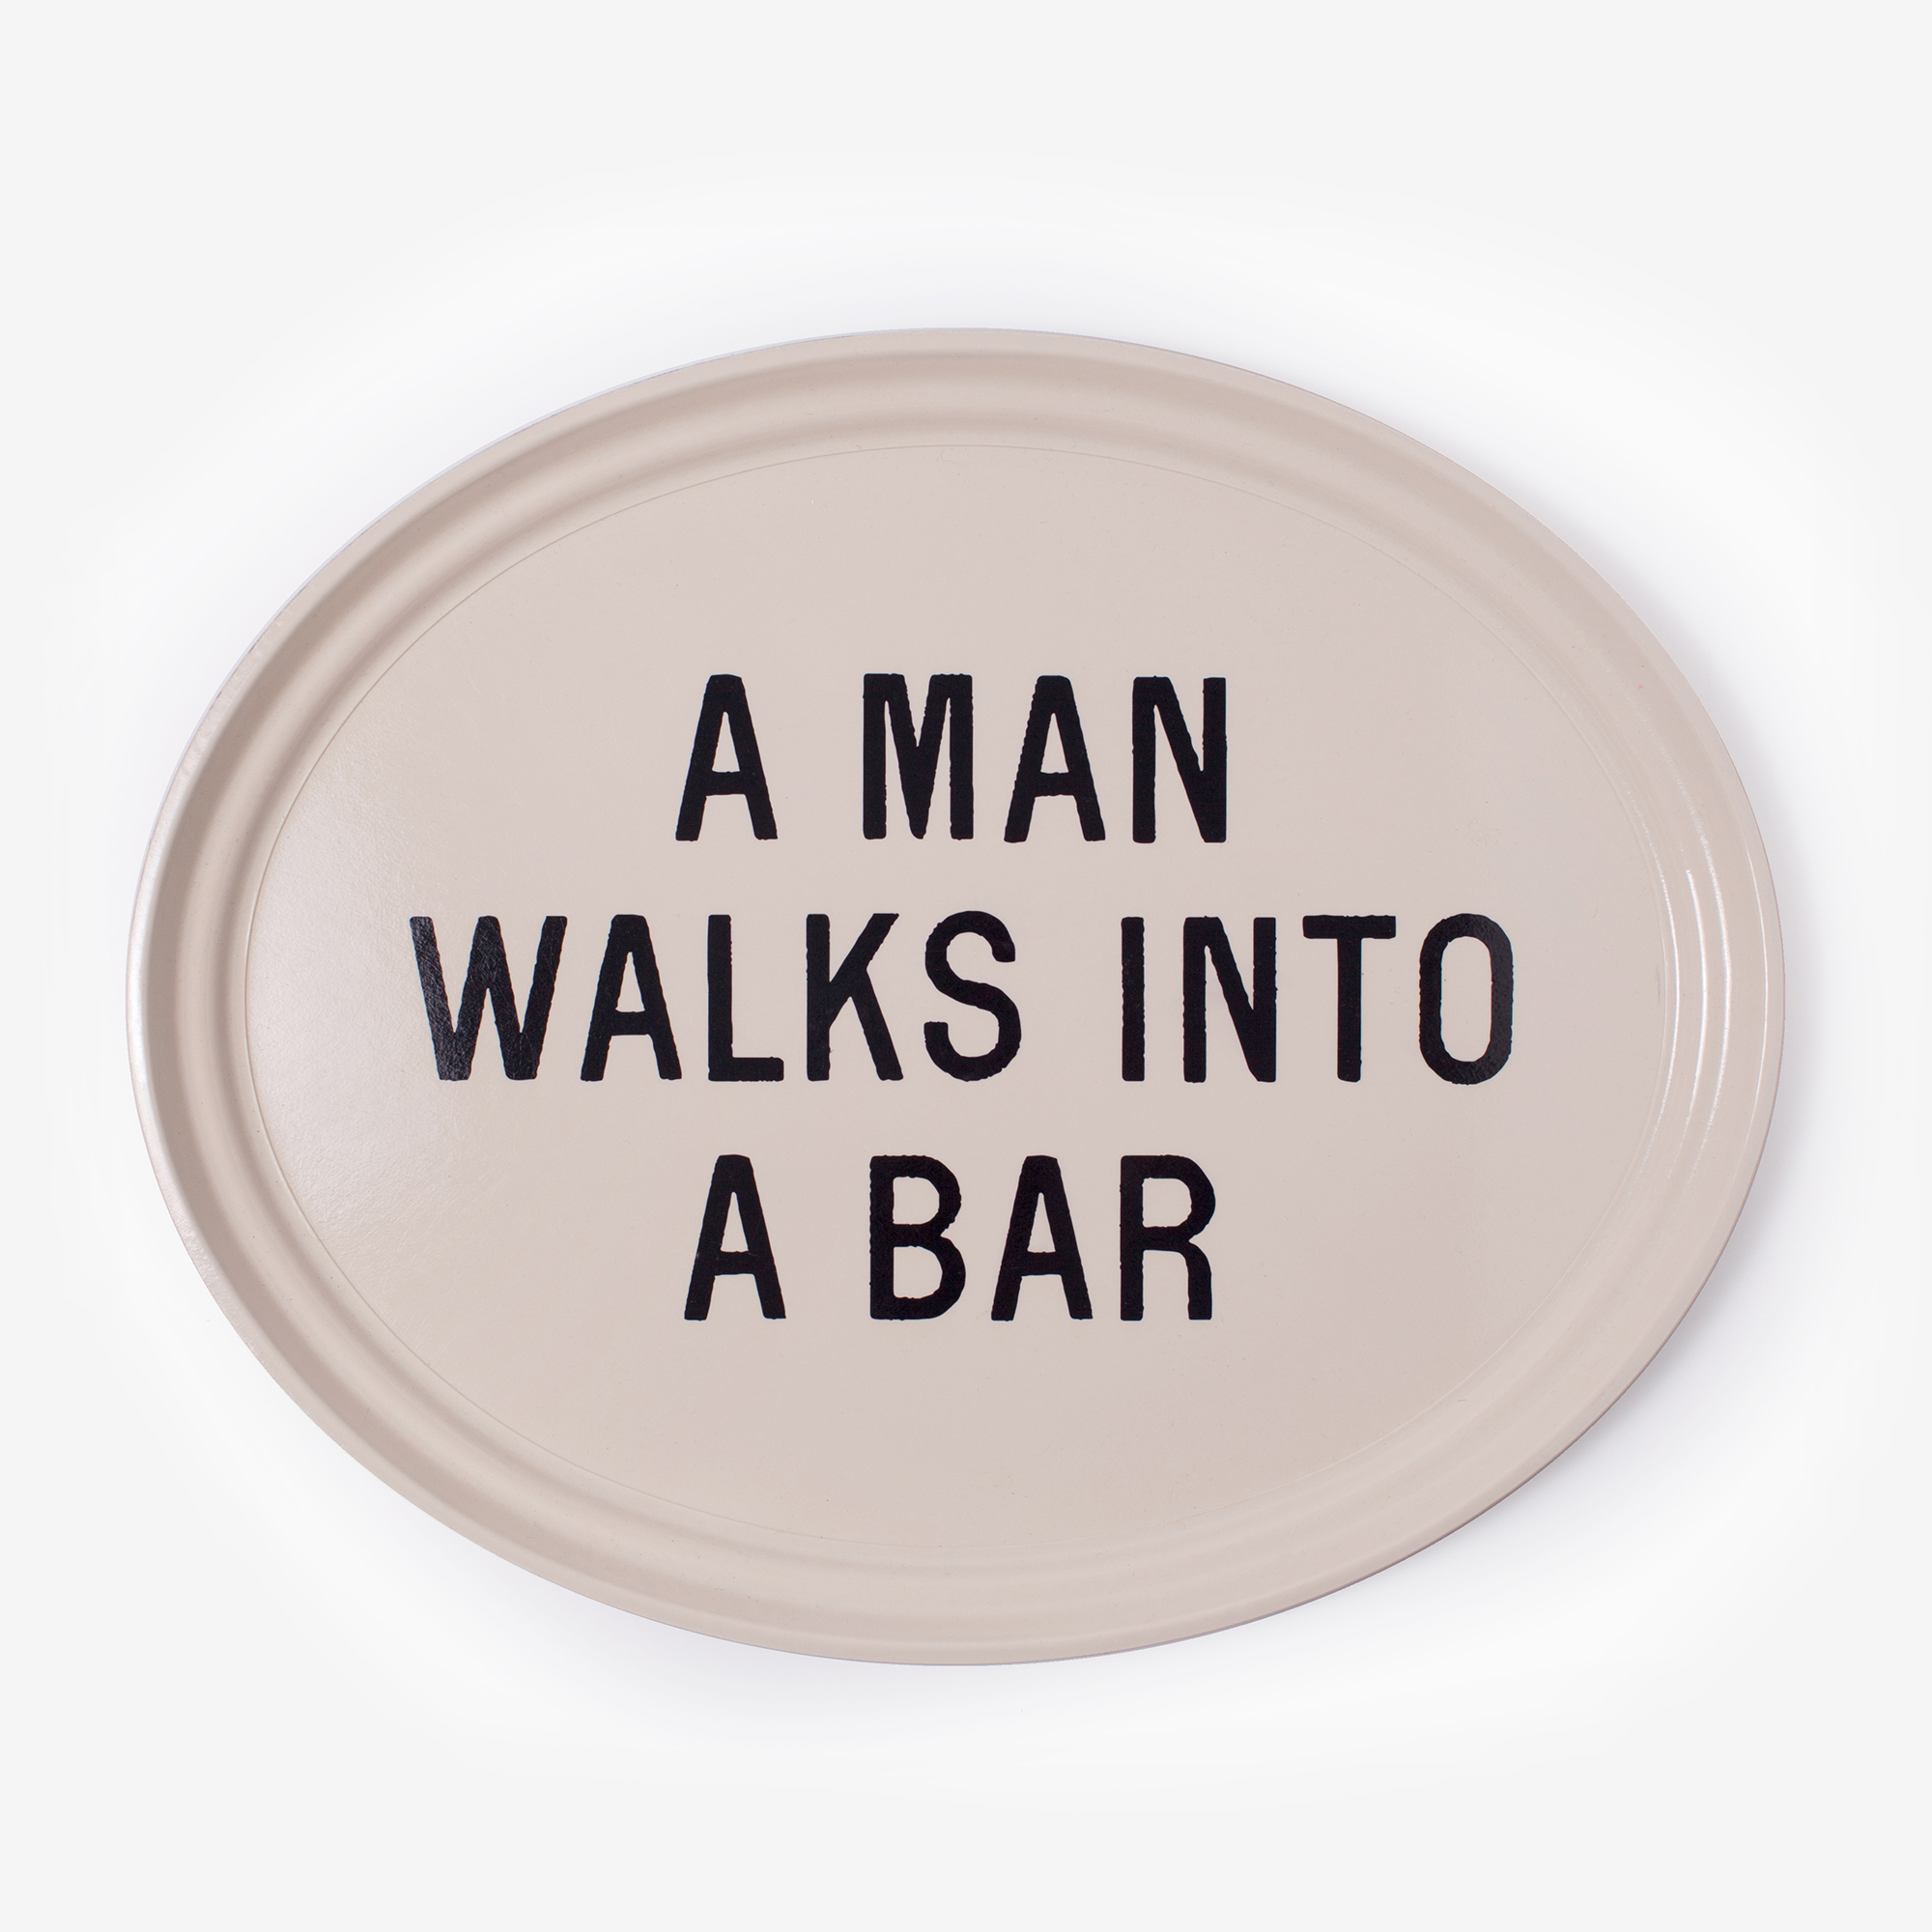 A Man Walks Into A Bar, Tray